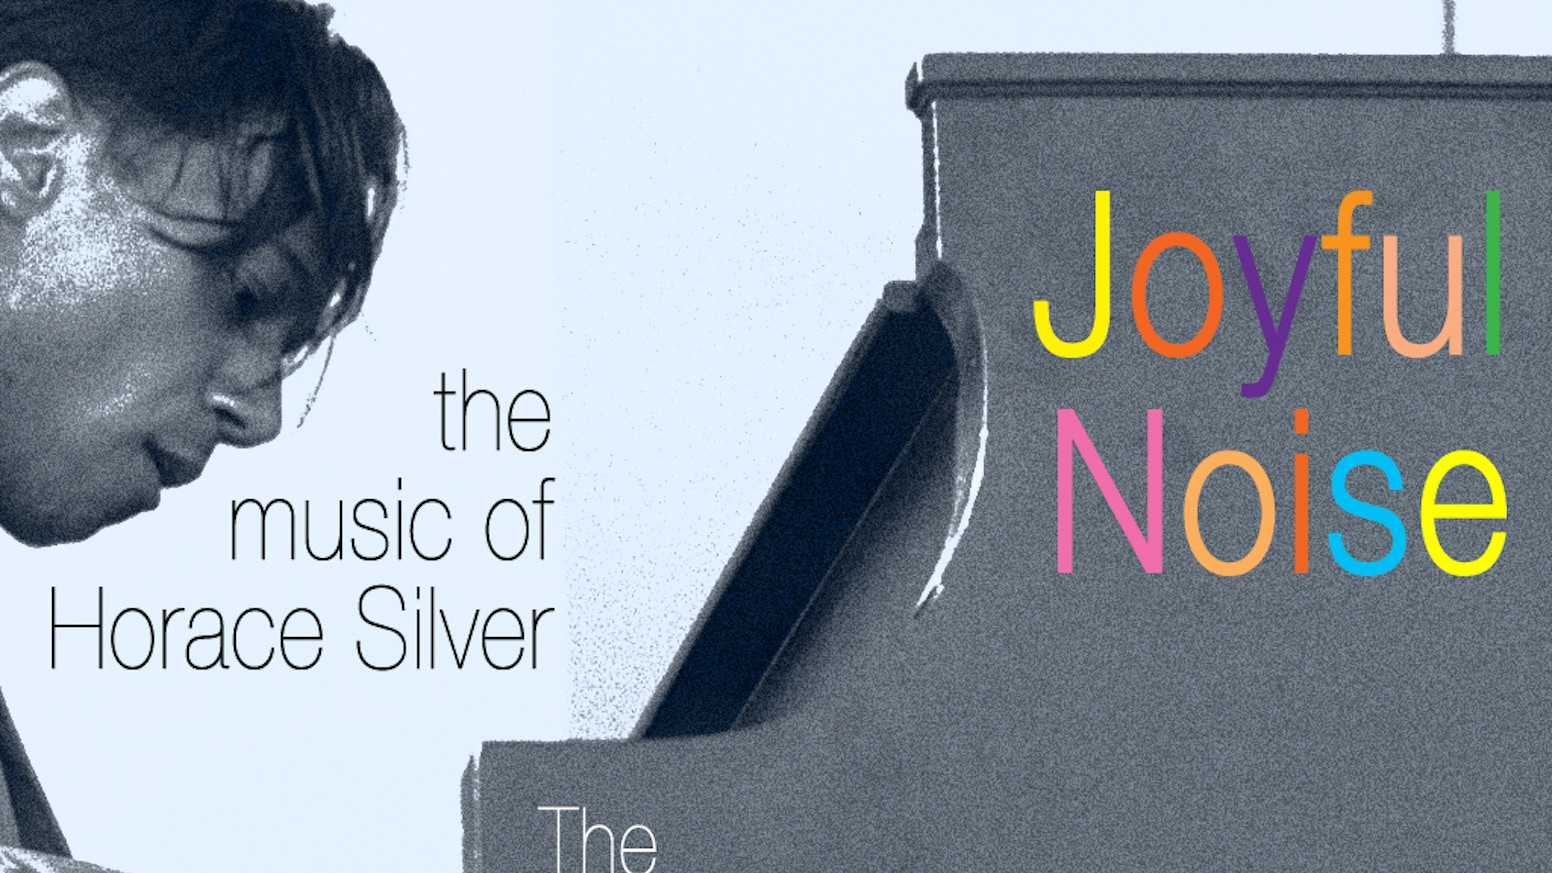 Joyful Noise: The Music of Horace Silver - Recording Project by The